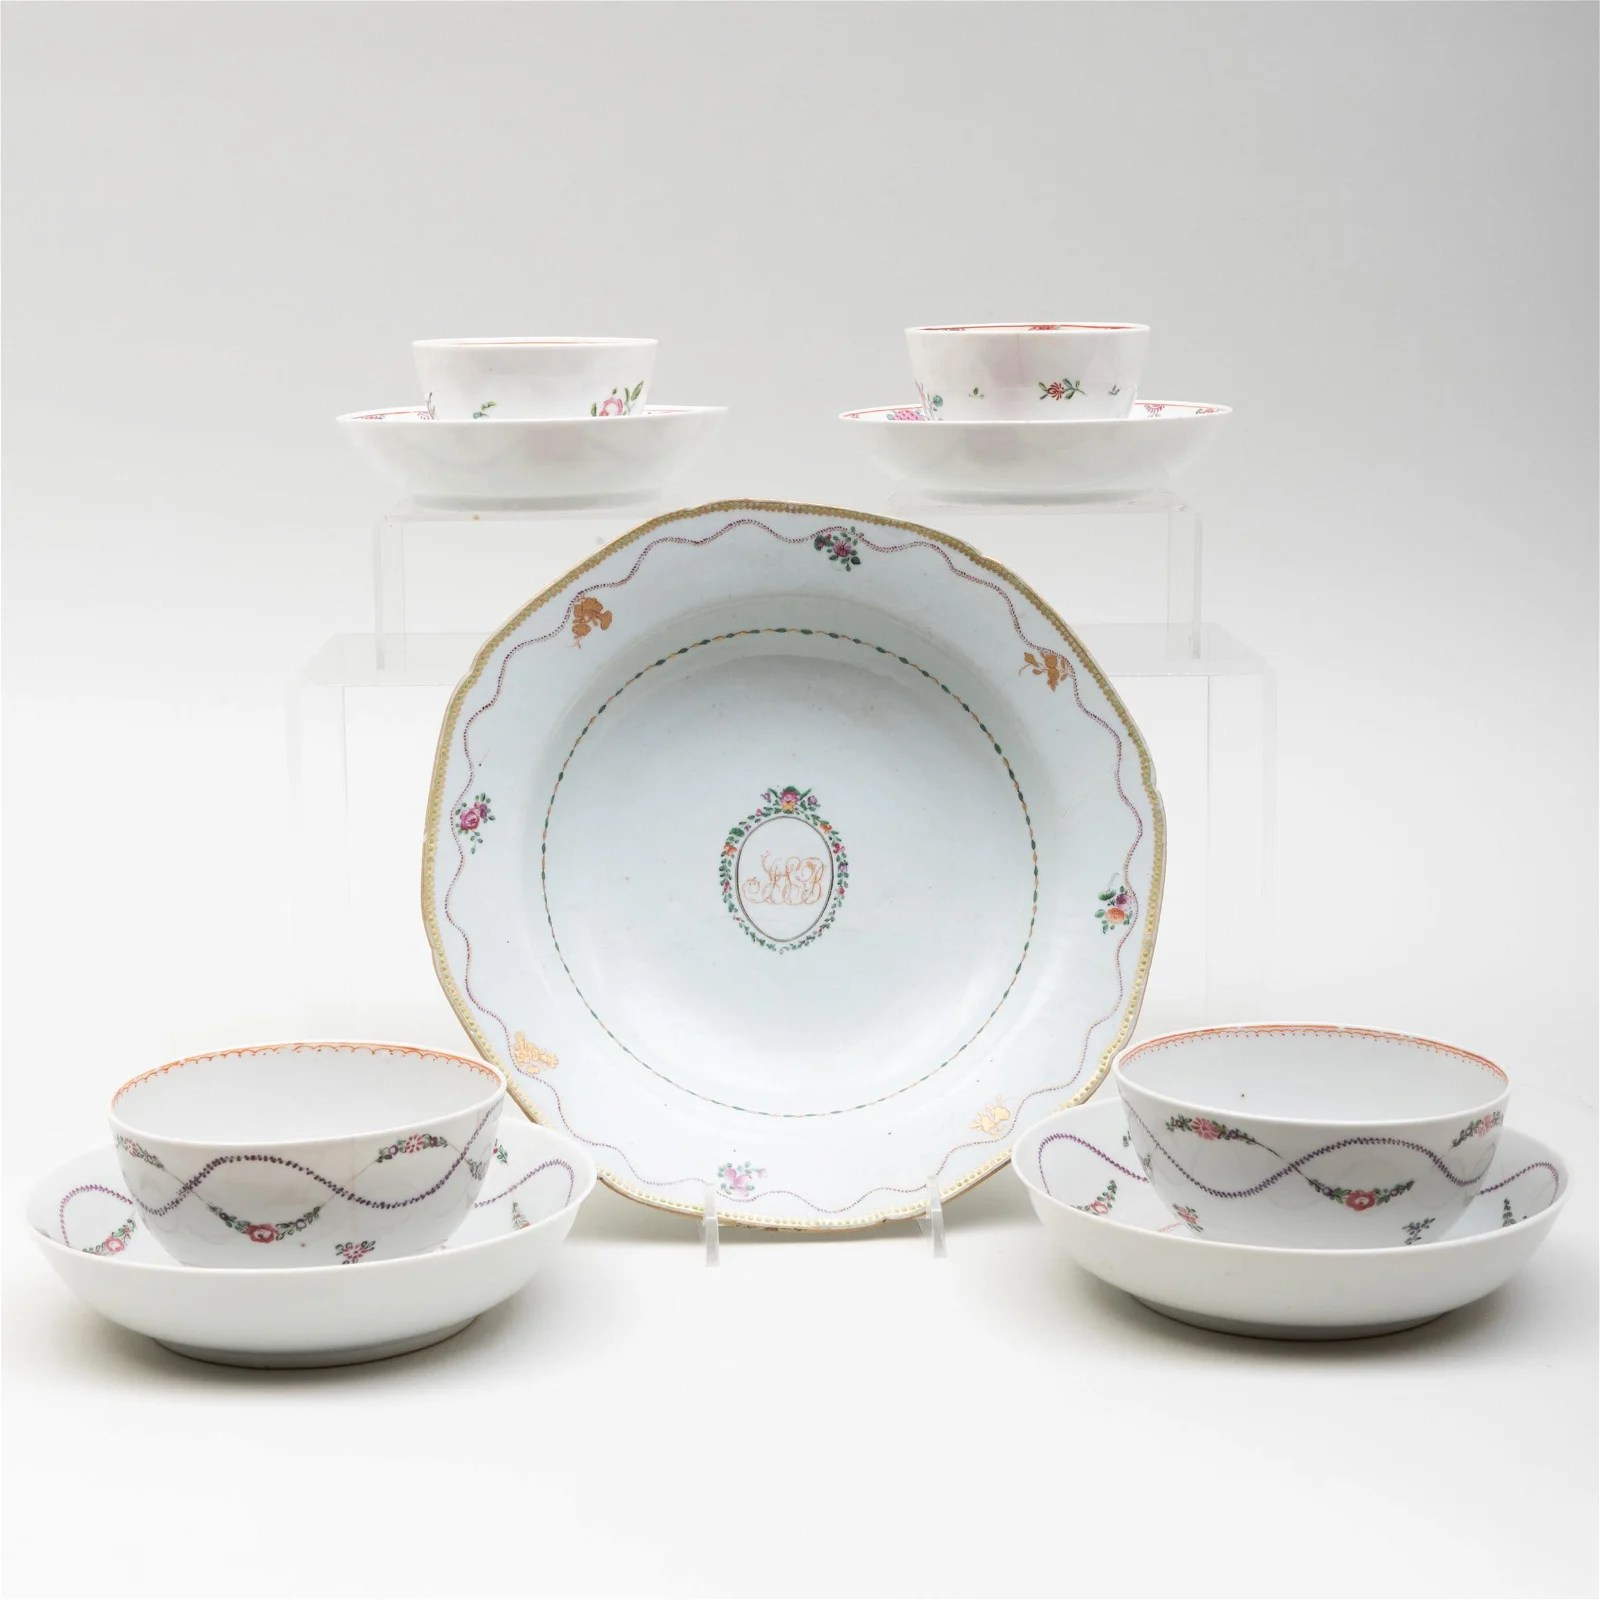 Group of Chinese Export Porcelain Dishes